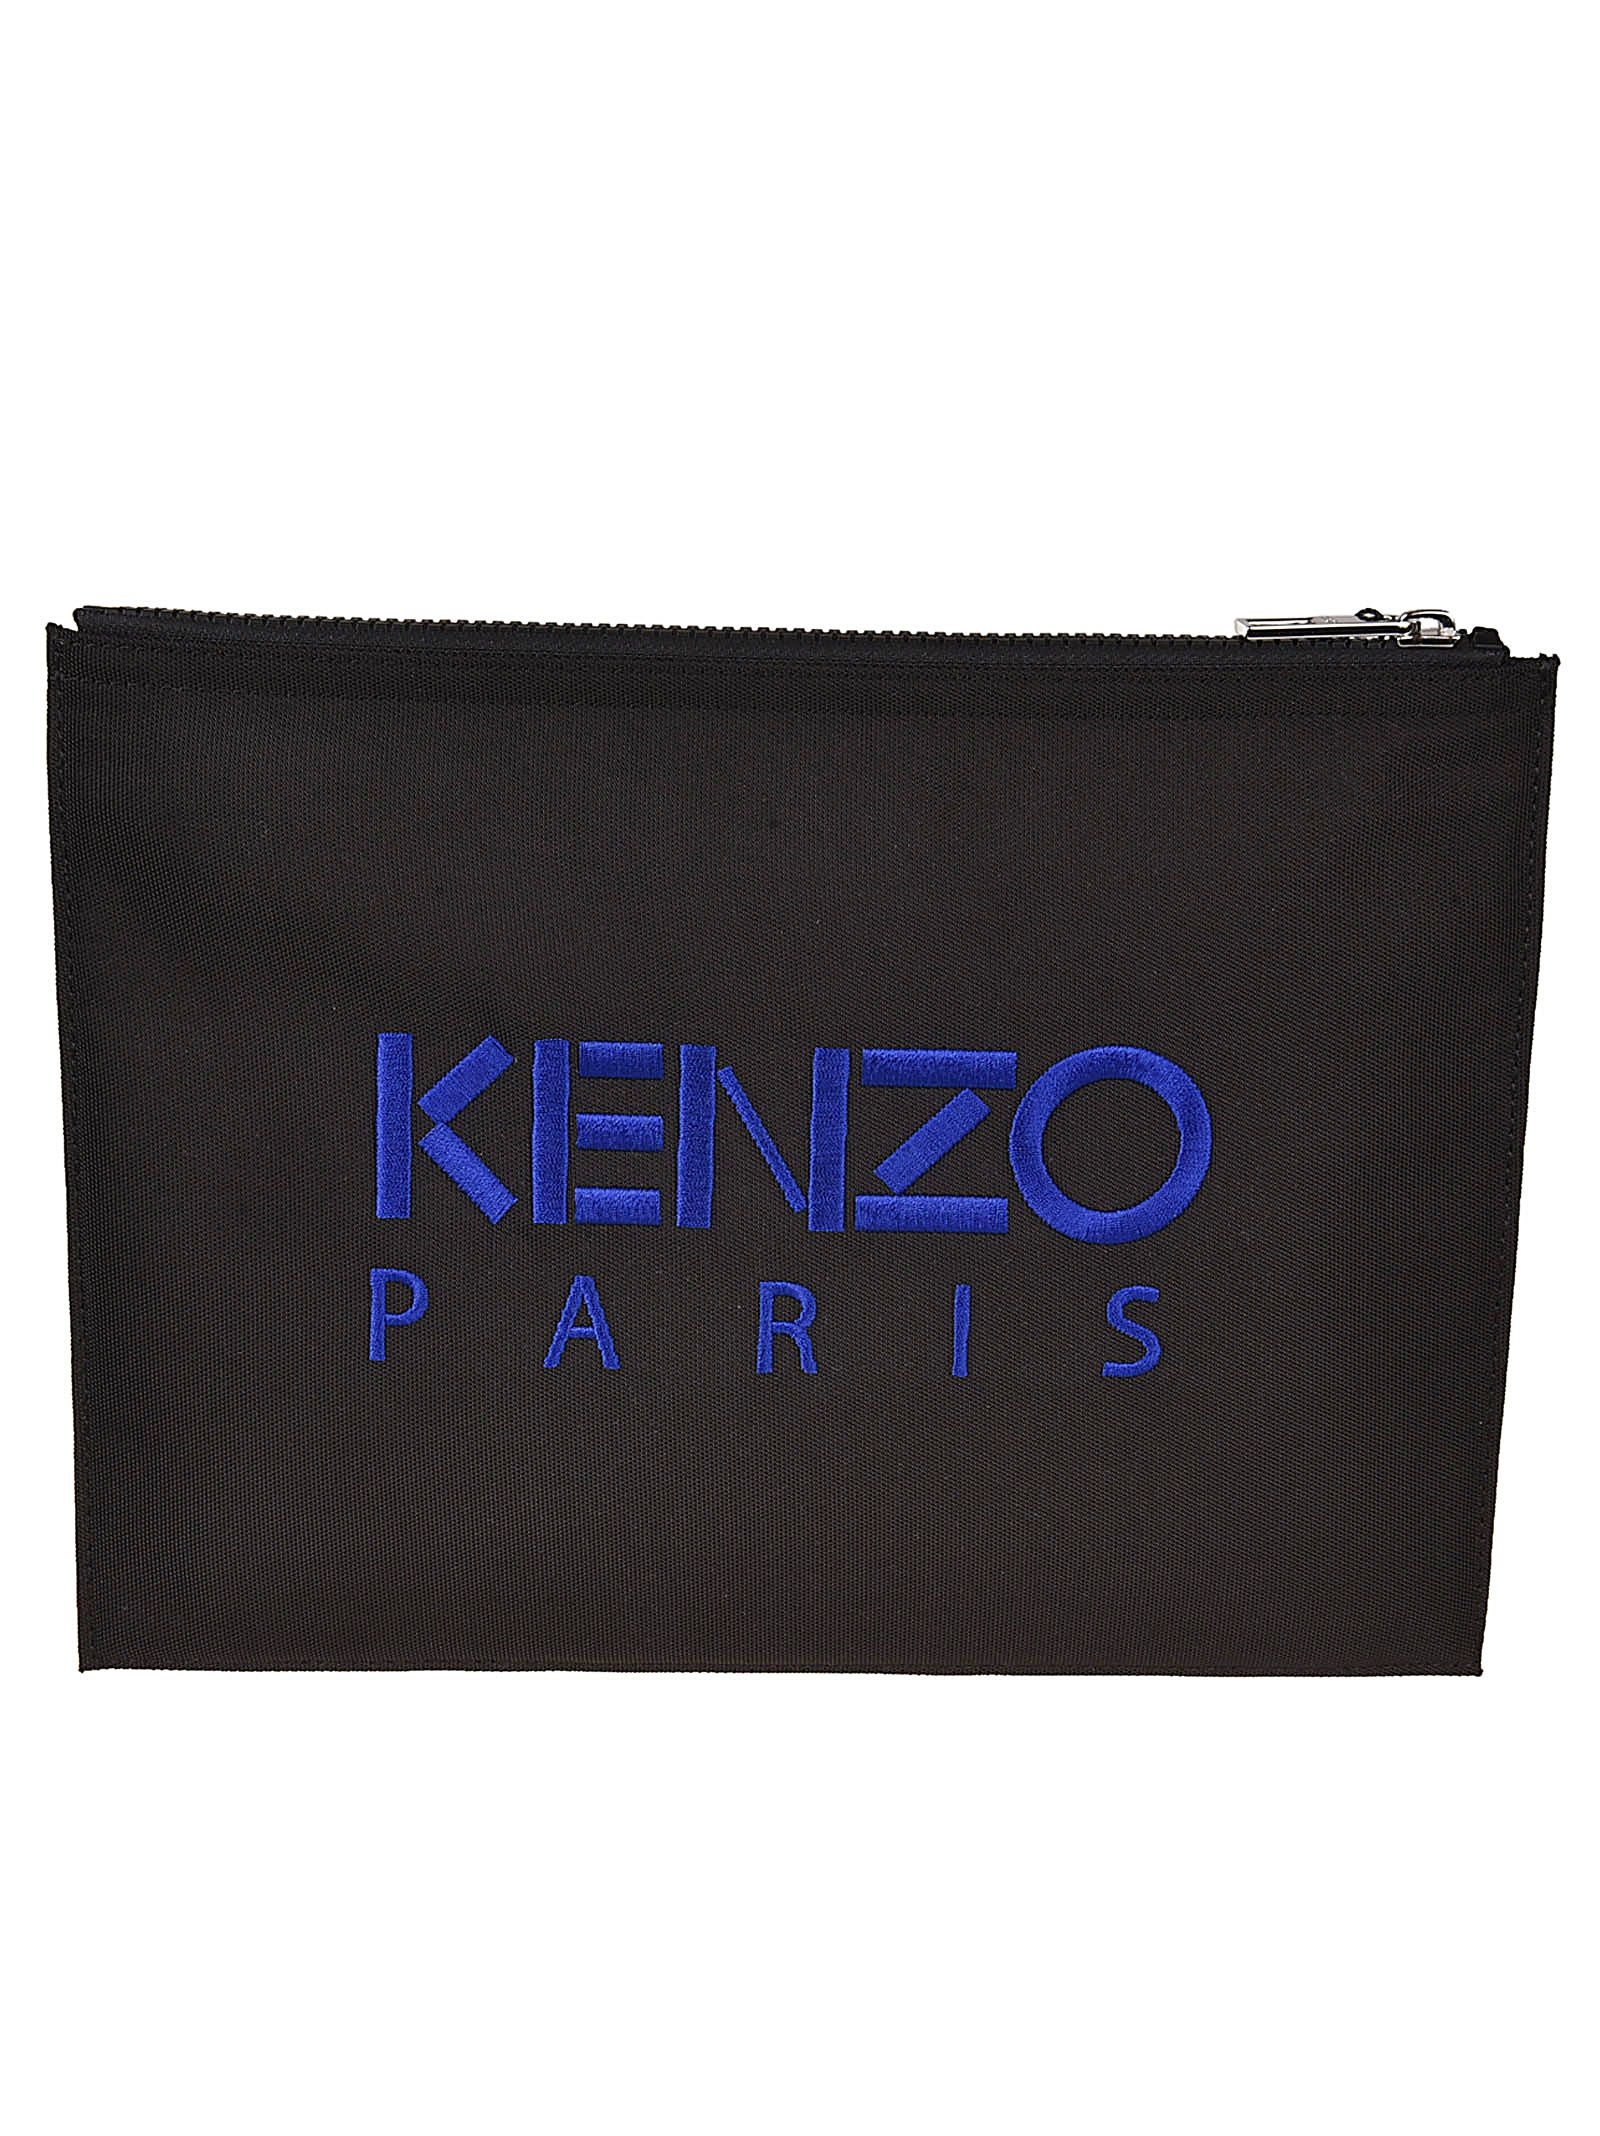 LOGO PRINT ZIP AROUND WALLET